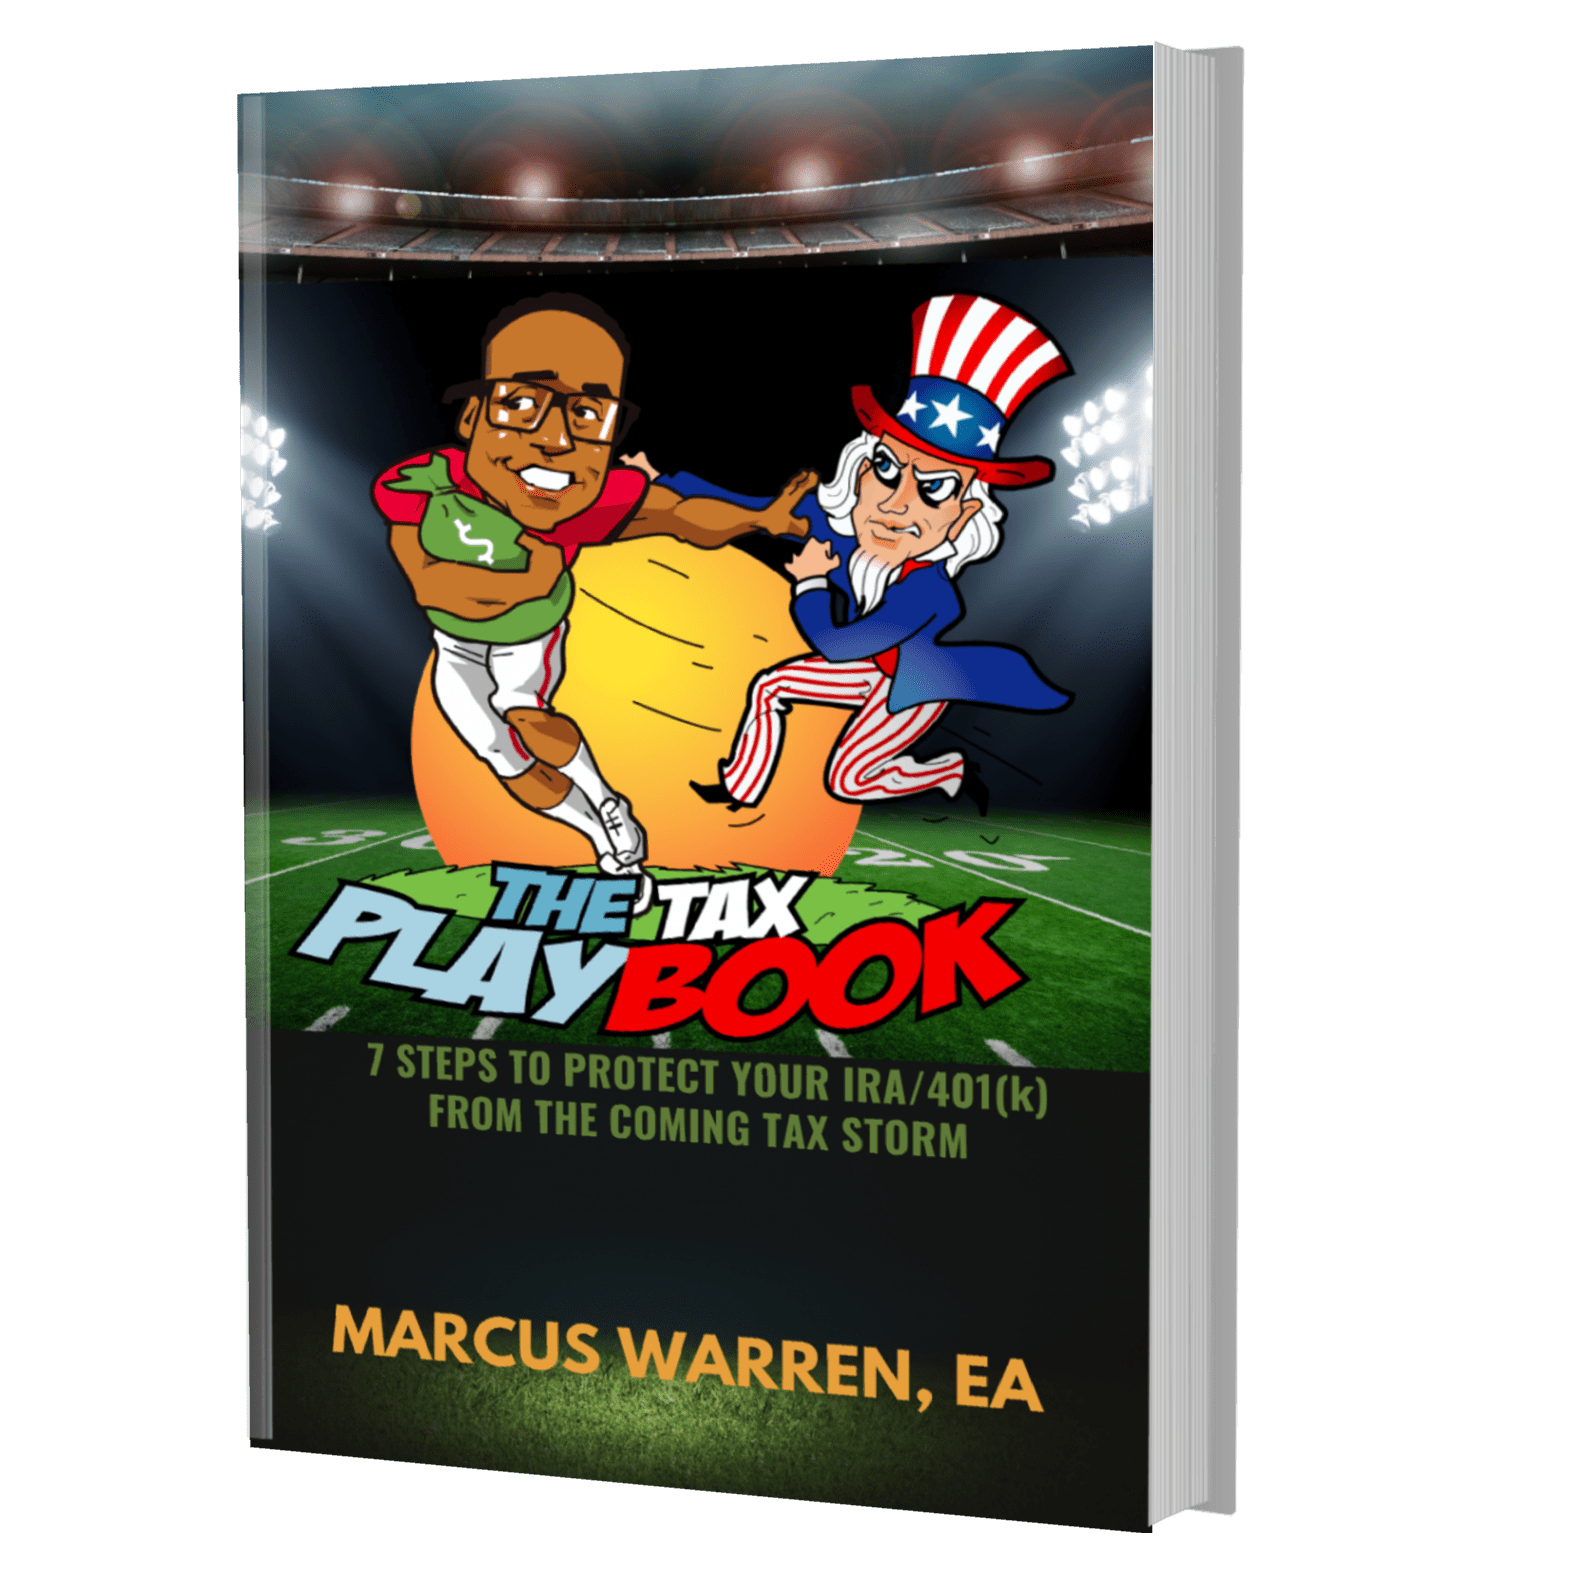 Tax Playbook Book